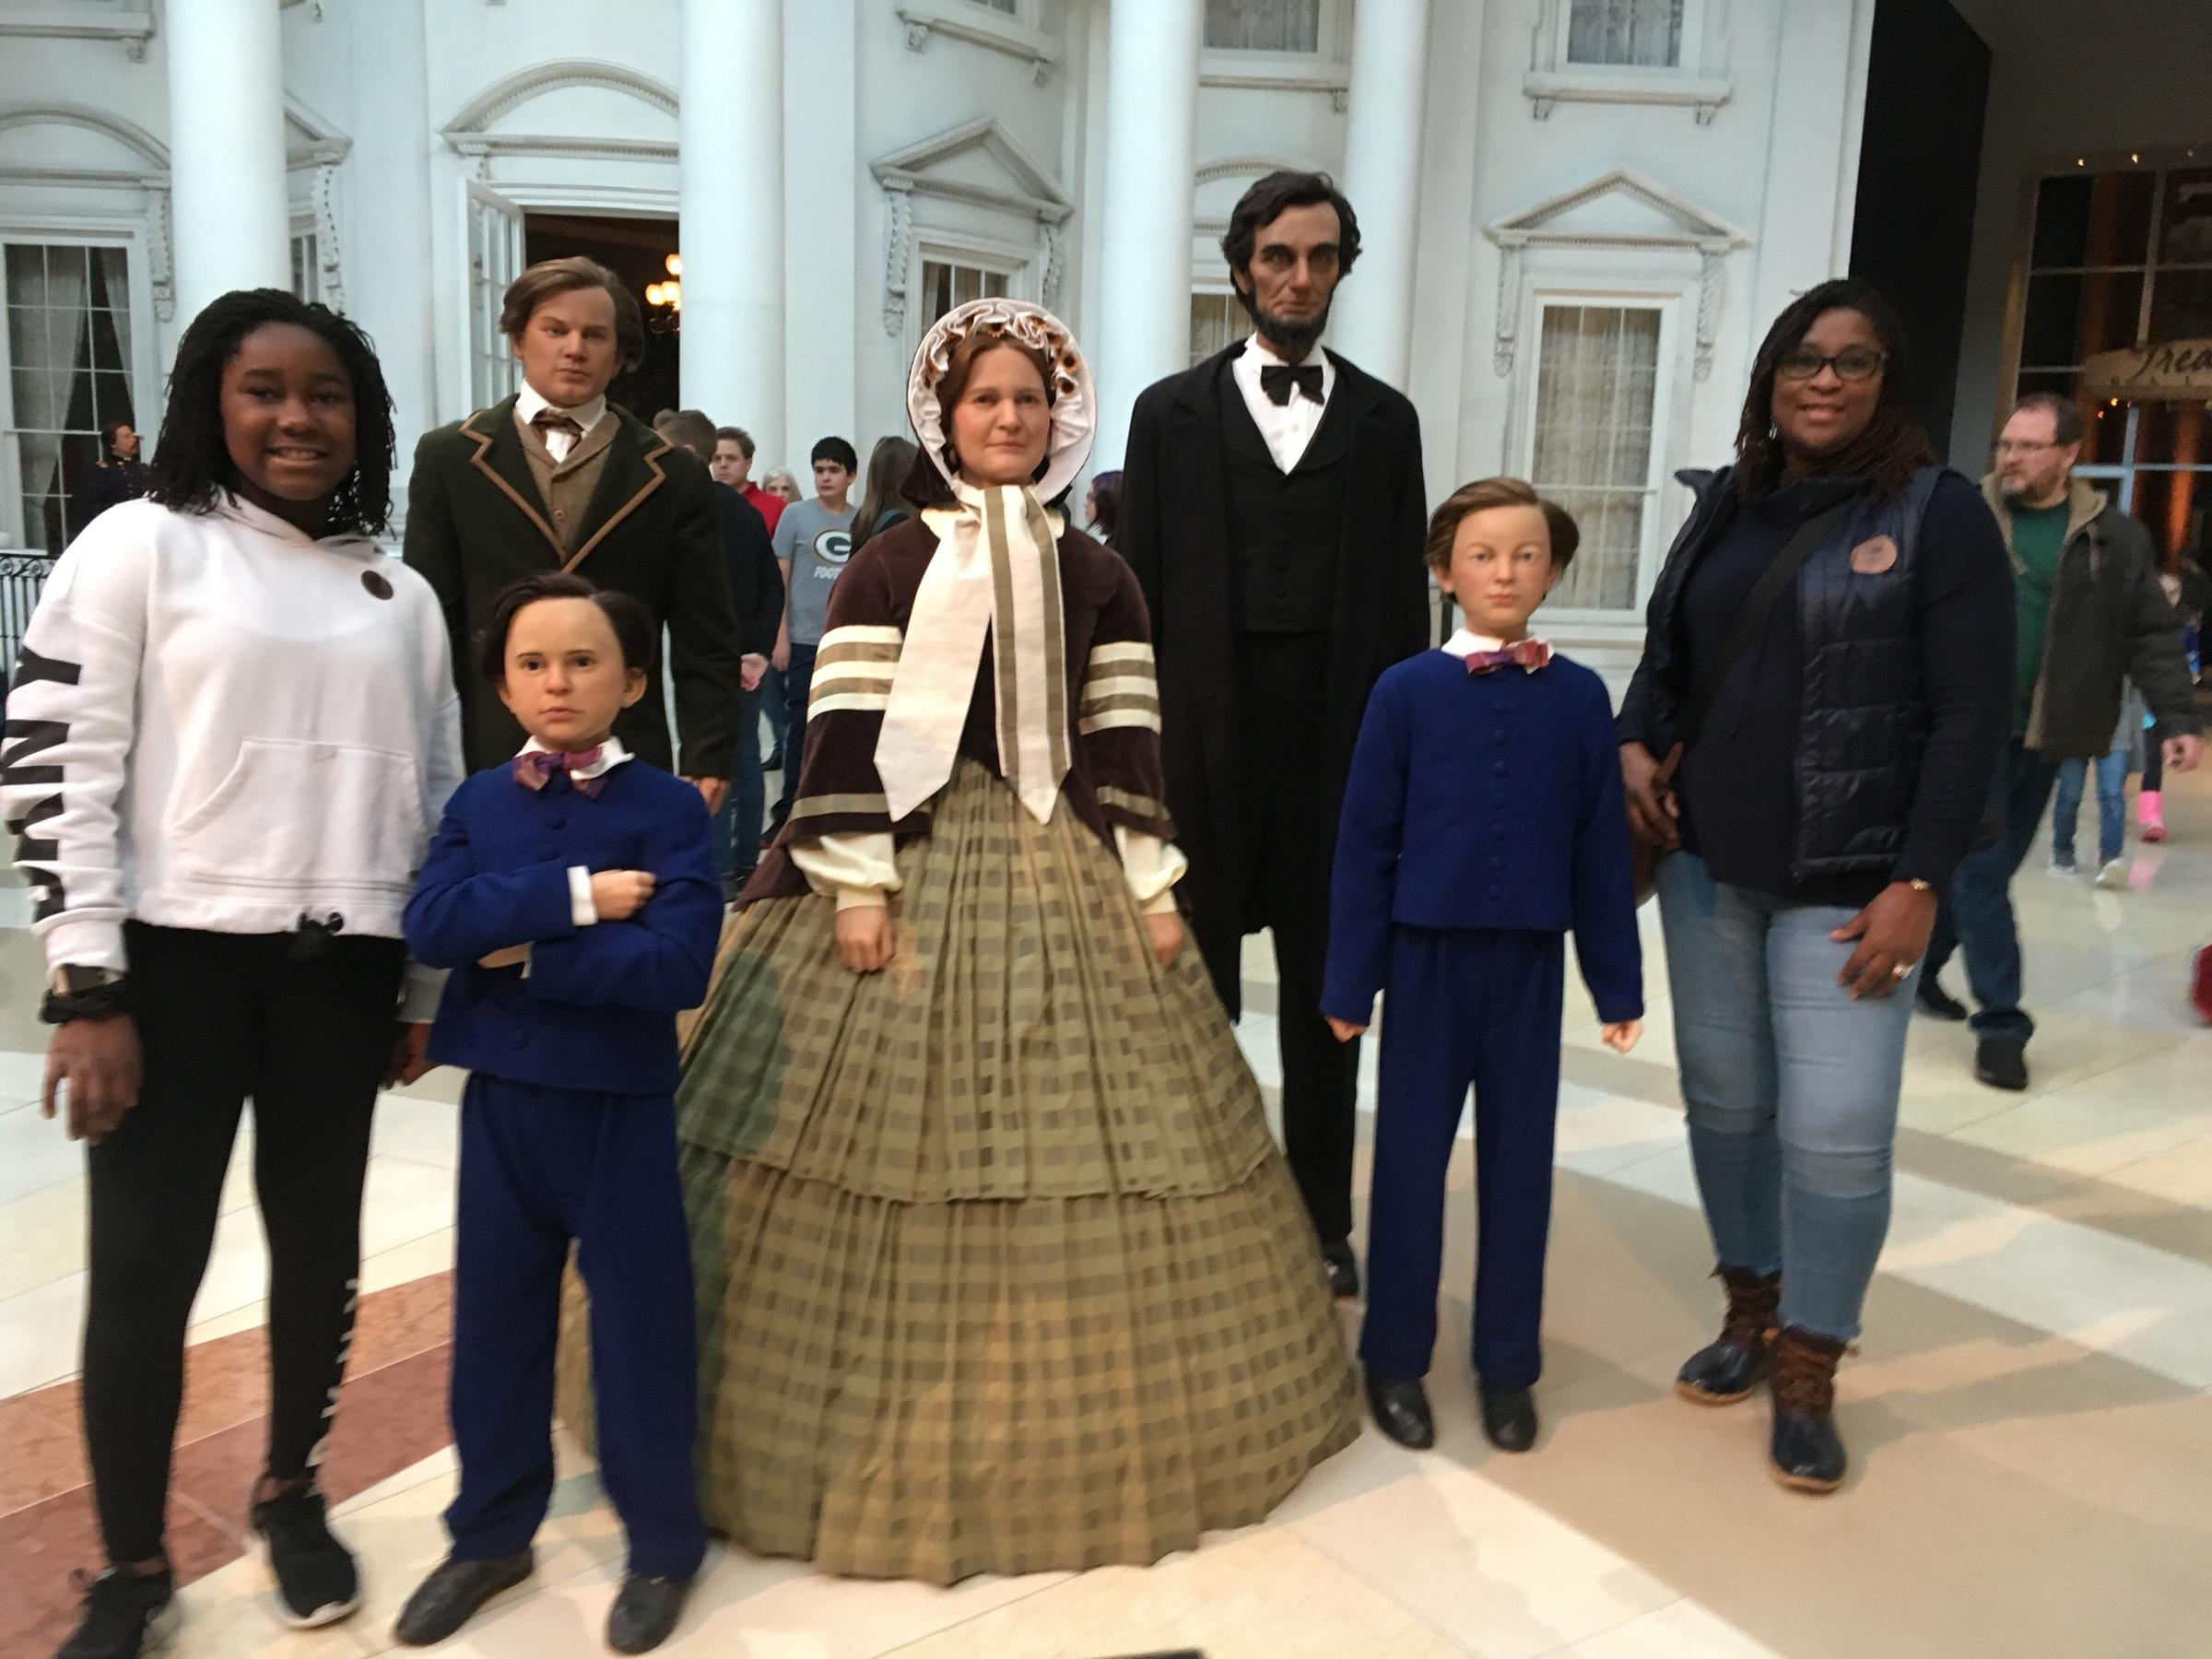 27e5f154ead It s become a tradition for visitors to pose with Lincoln cutouts at the  museum. Jadyn Scott and her mom Justina Scott-Hayes of Chatham